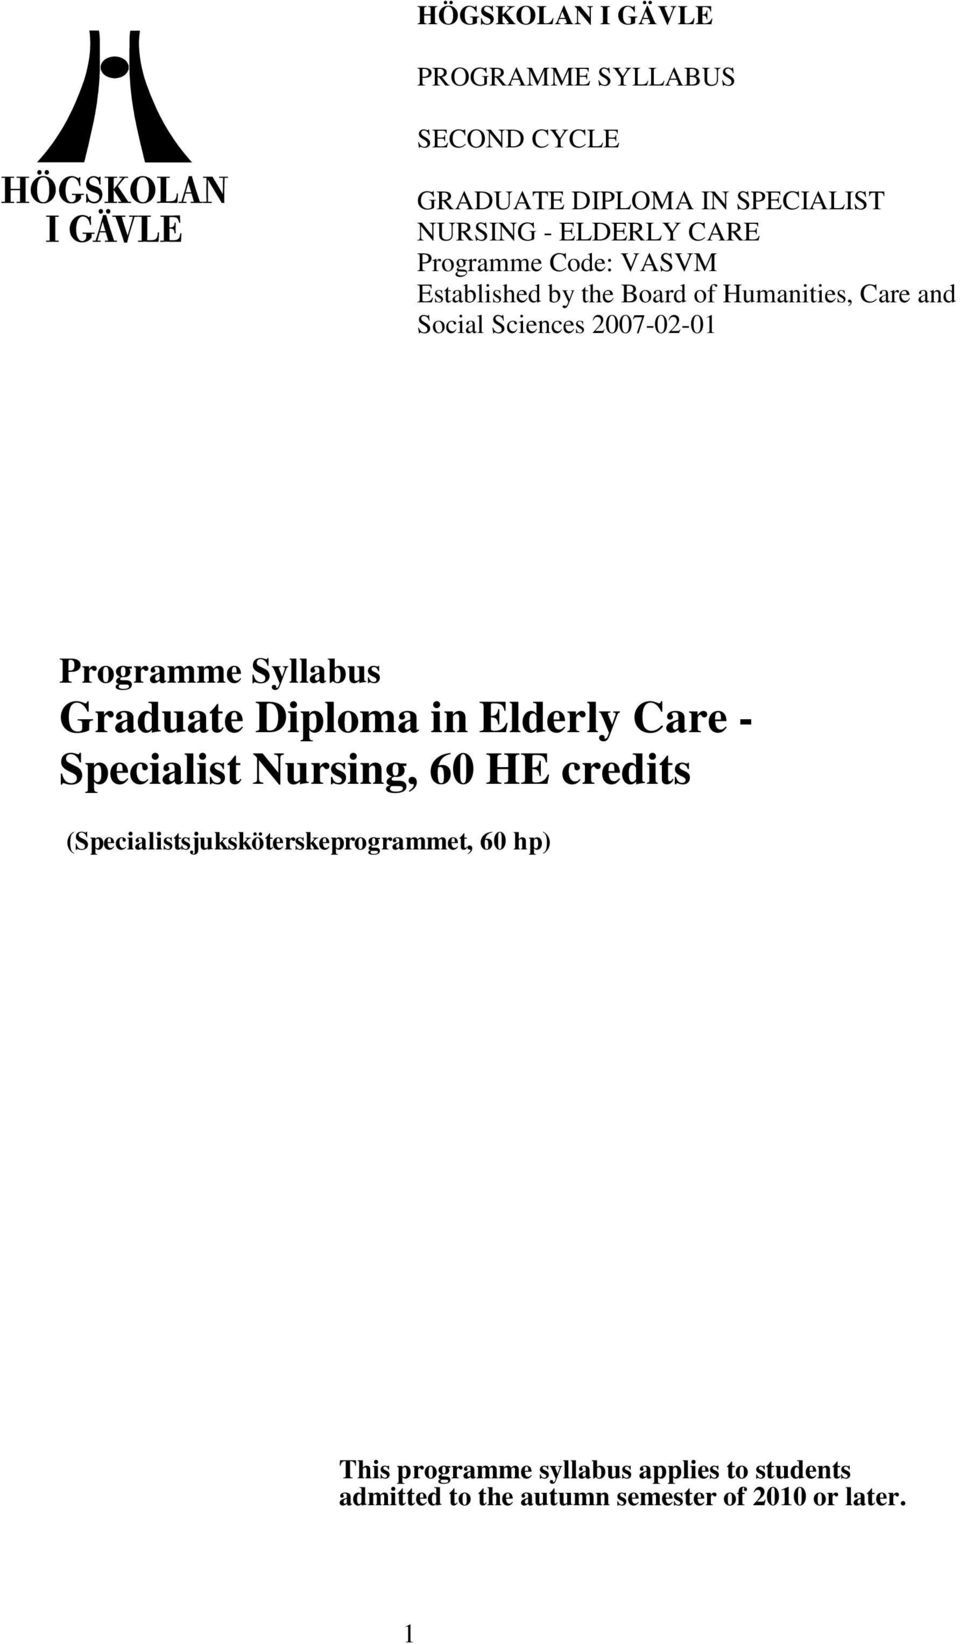 Programme Syllabus Graduate Diploma in Elderly Care - Specialist Nursing, 60 HE credits